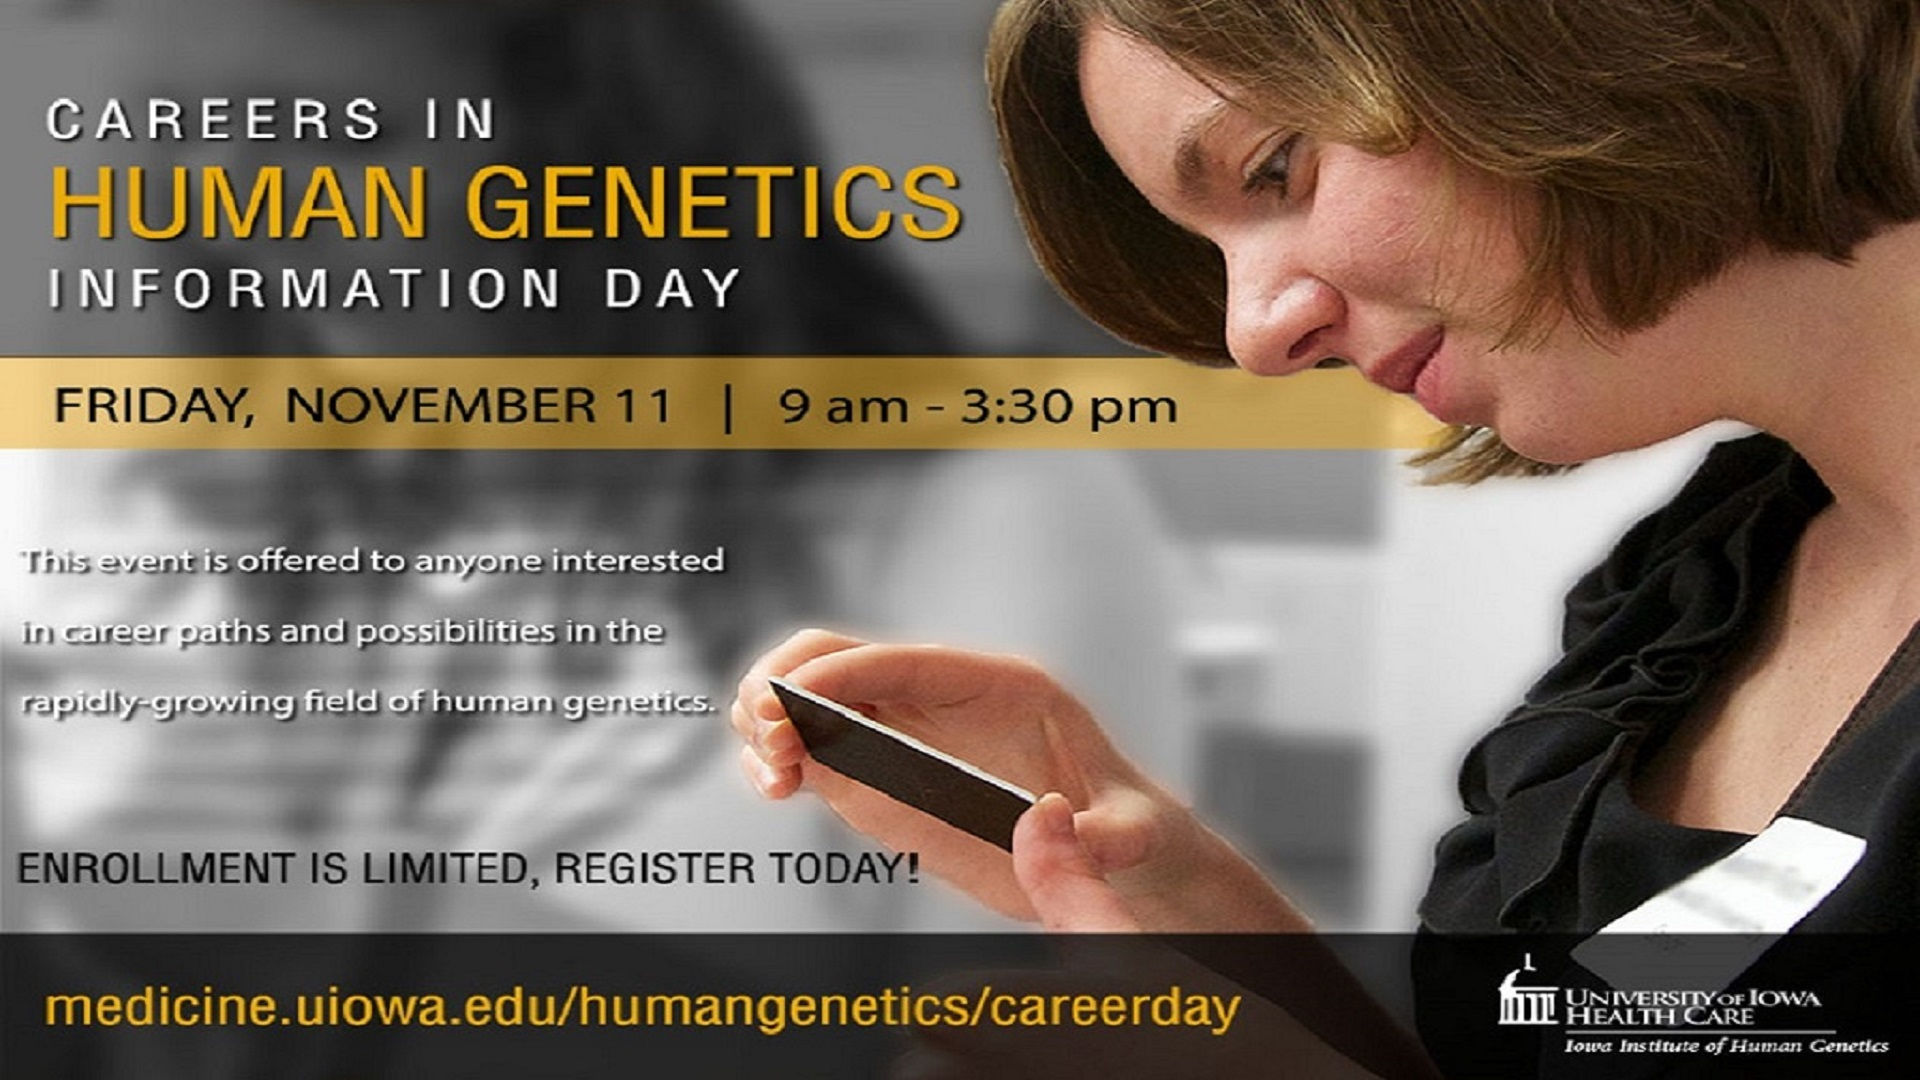 Careers in Human Genetics event